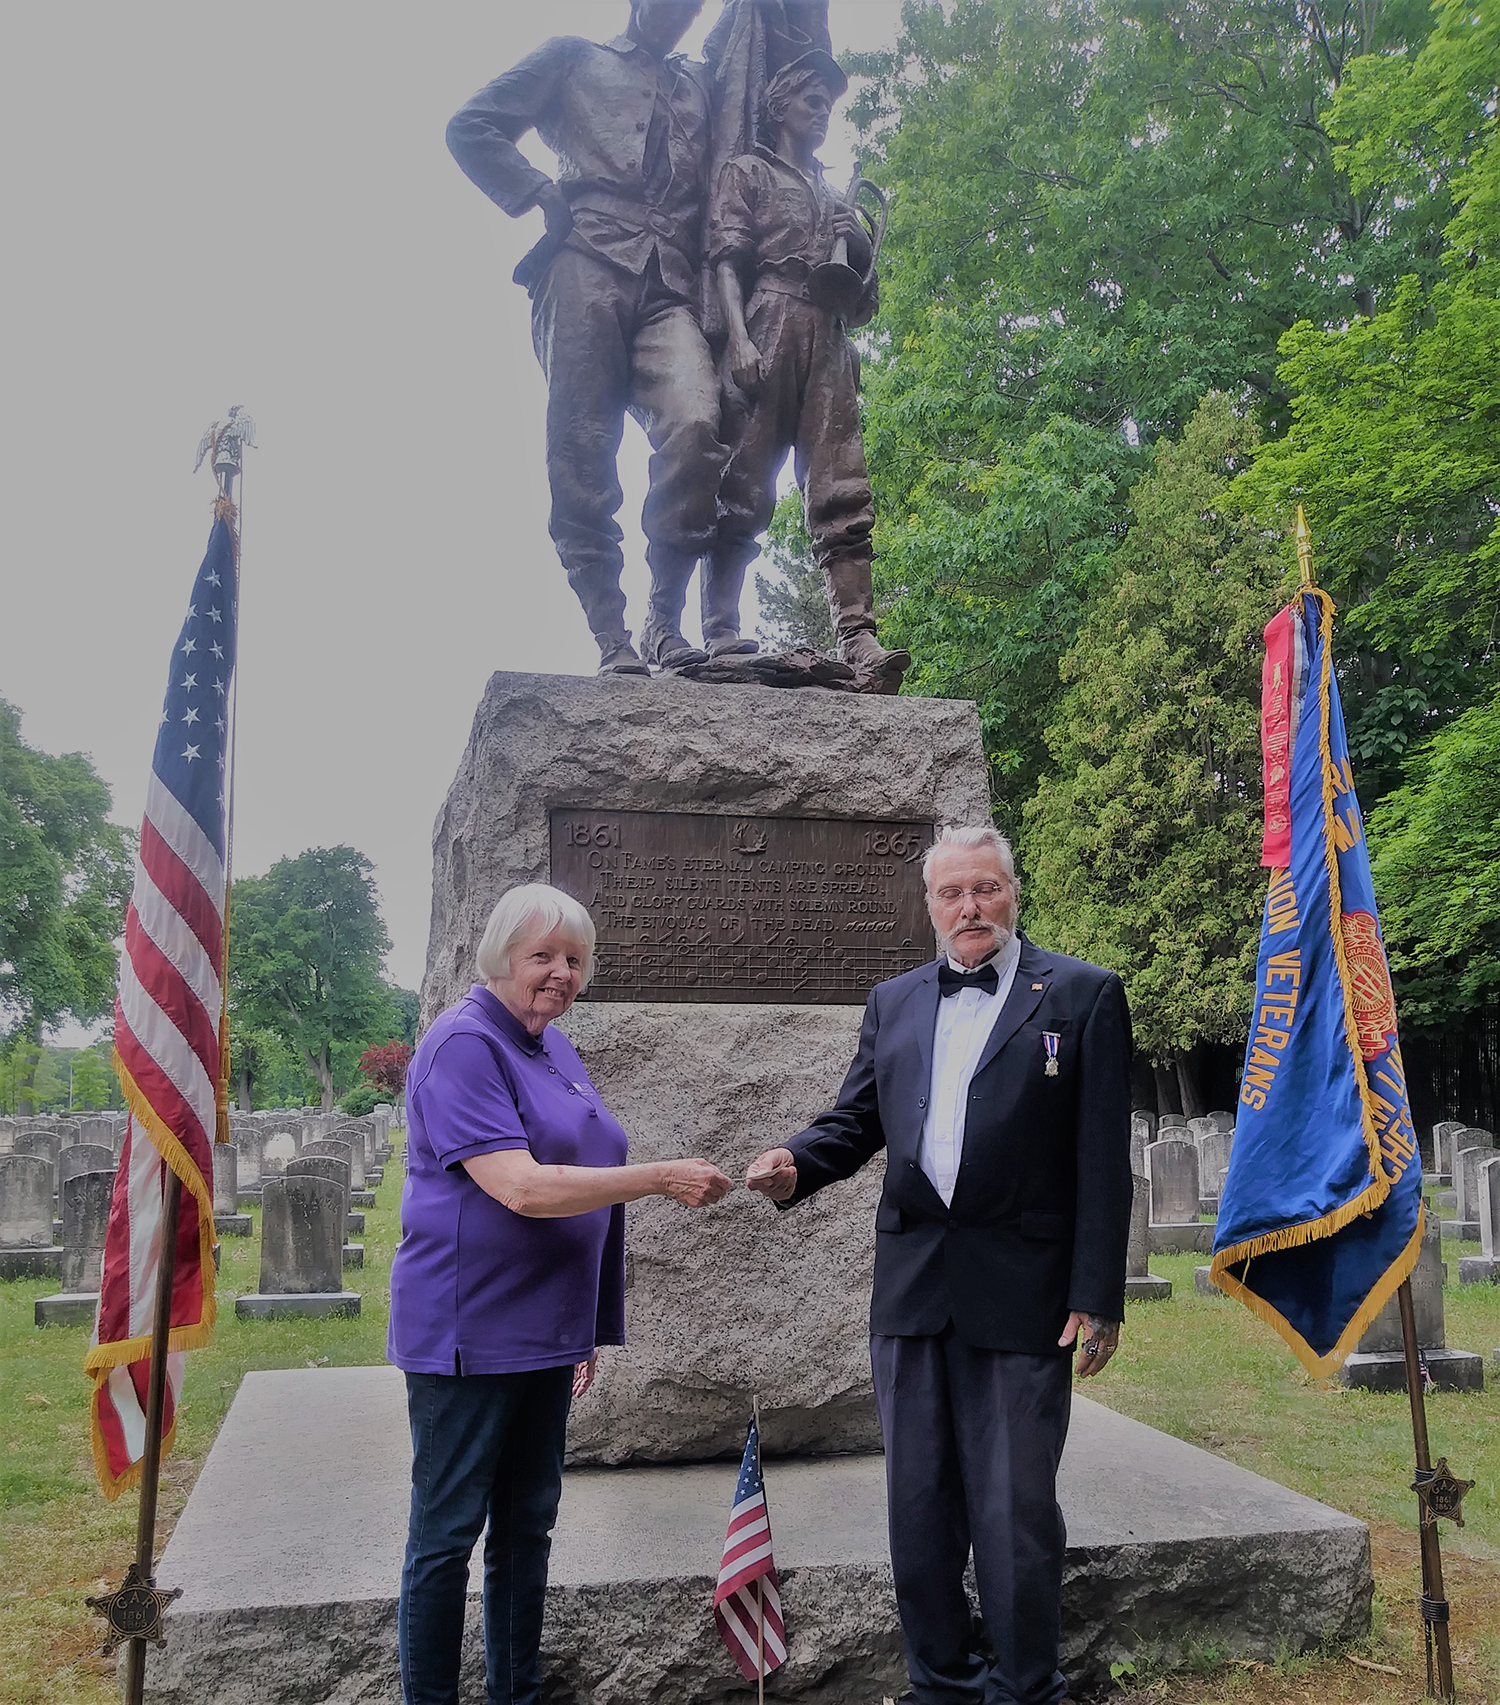 Sons Of Union Veterans Of Civil War Raise Funds For Monument Restoration Project